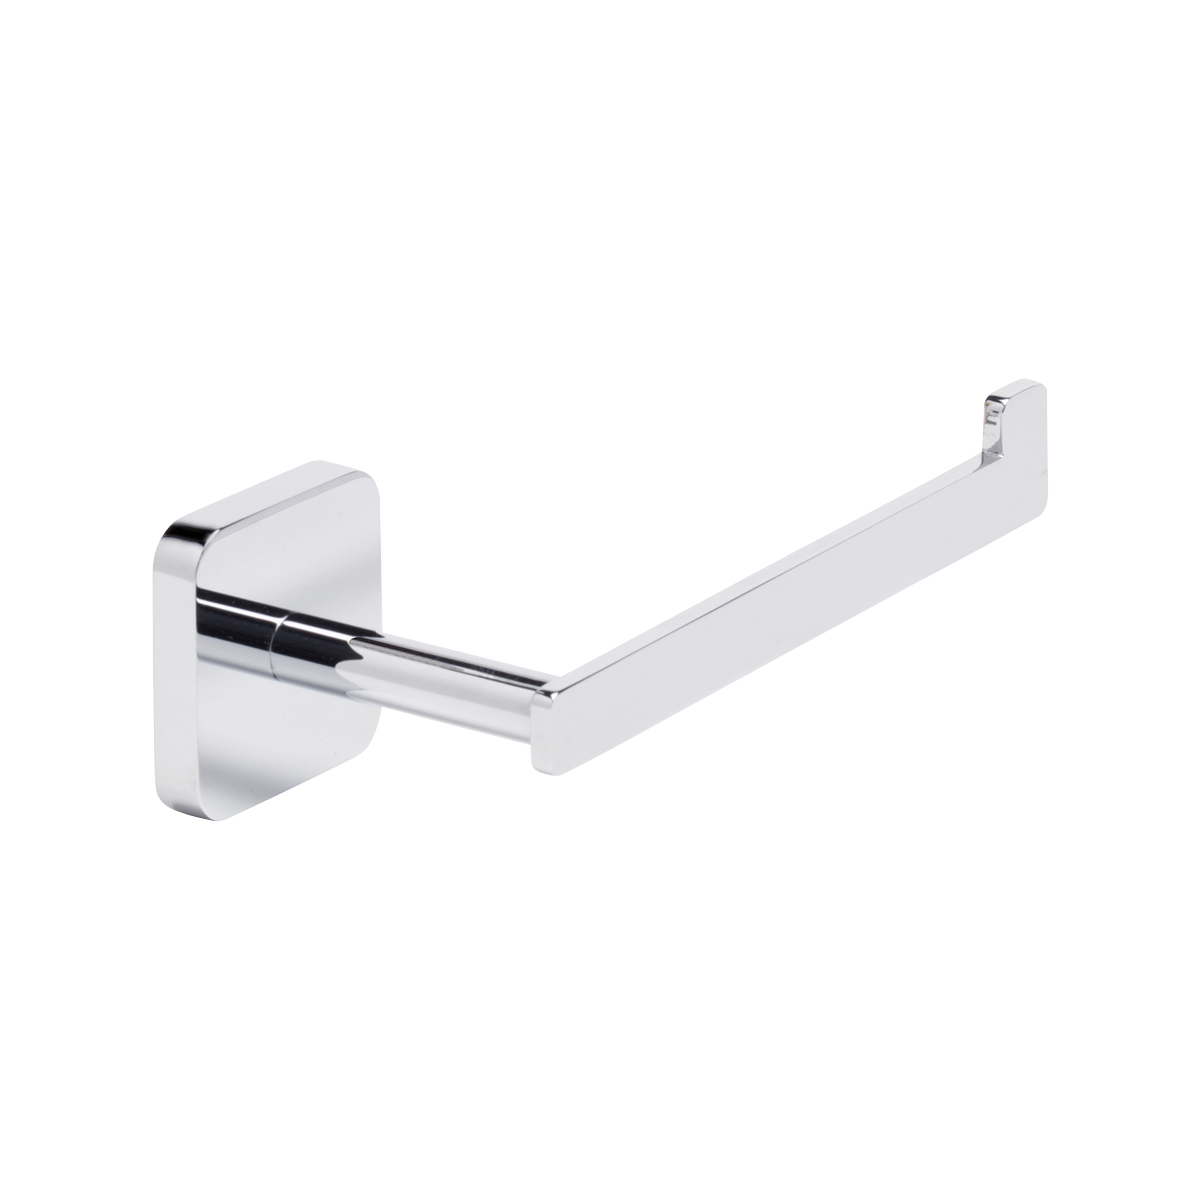 Roper Rhodes Ignite Toilet Roll Holder